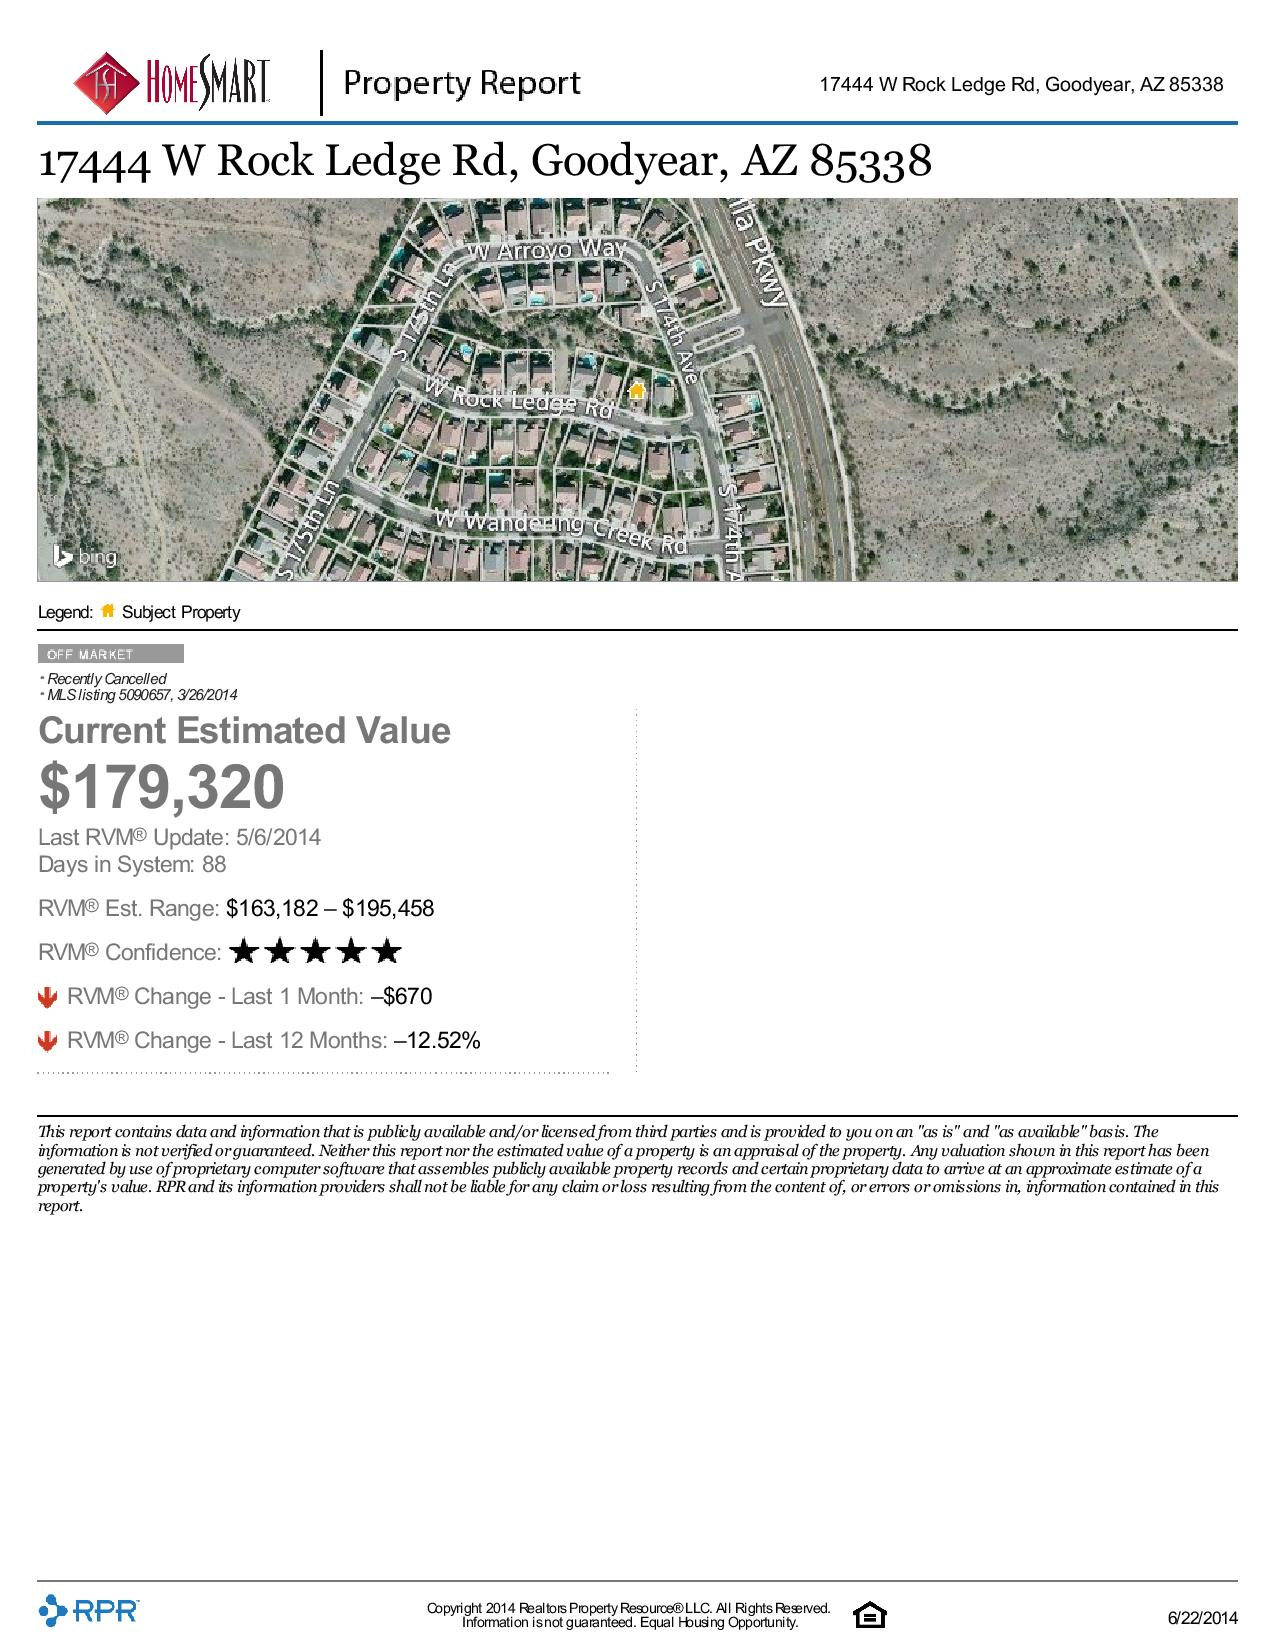 17444-W-Rock-Ledge-Rd-Goodyear-AZ-85338-page-002